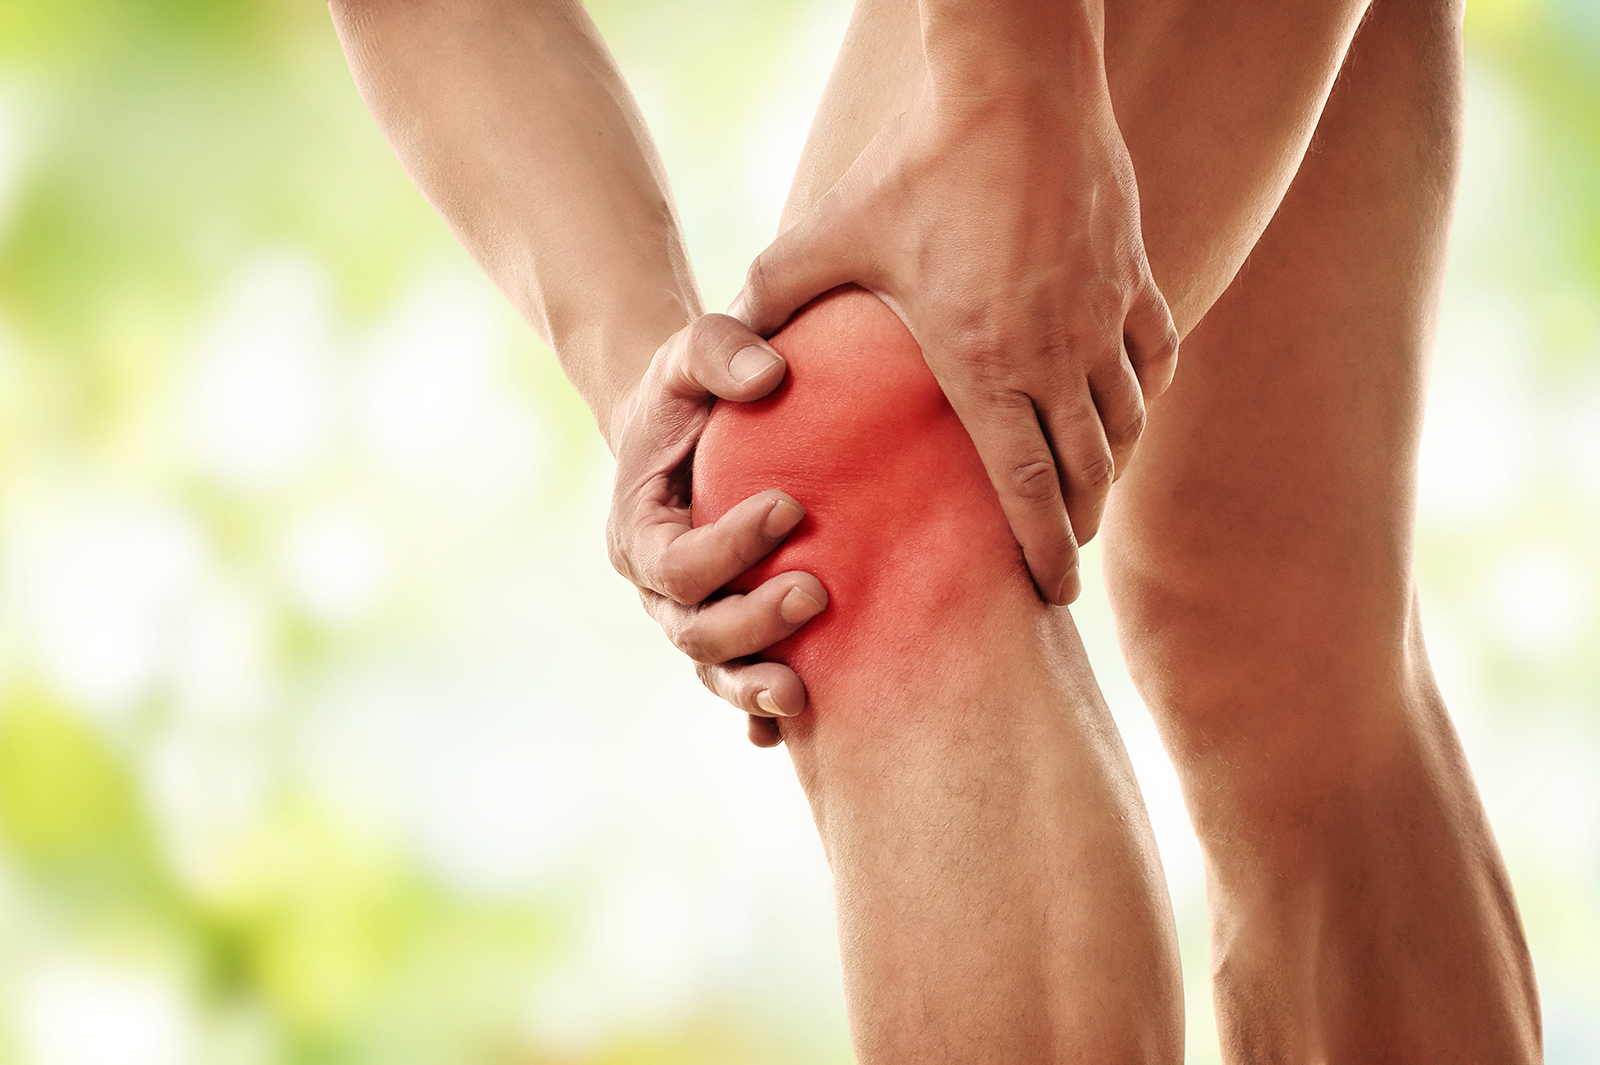 close up of man in pain holding knee that is bright red with both hands